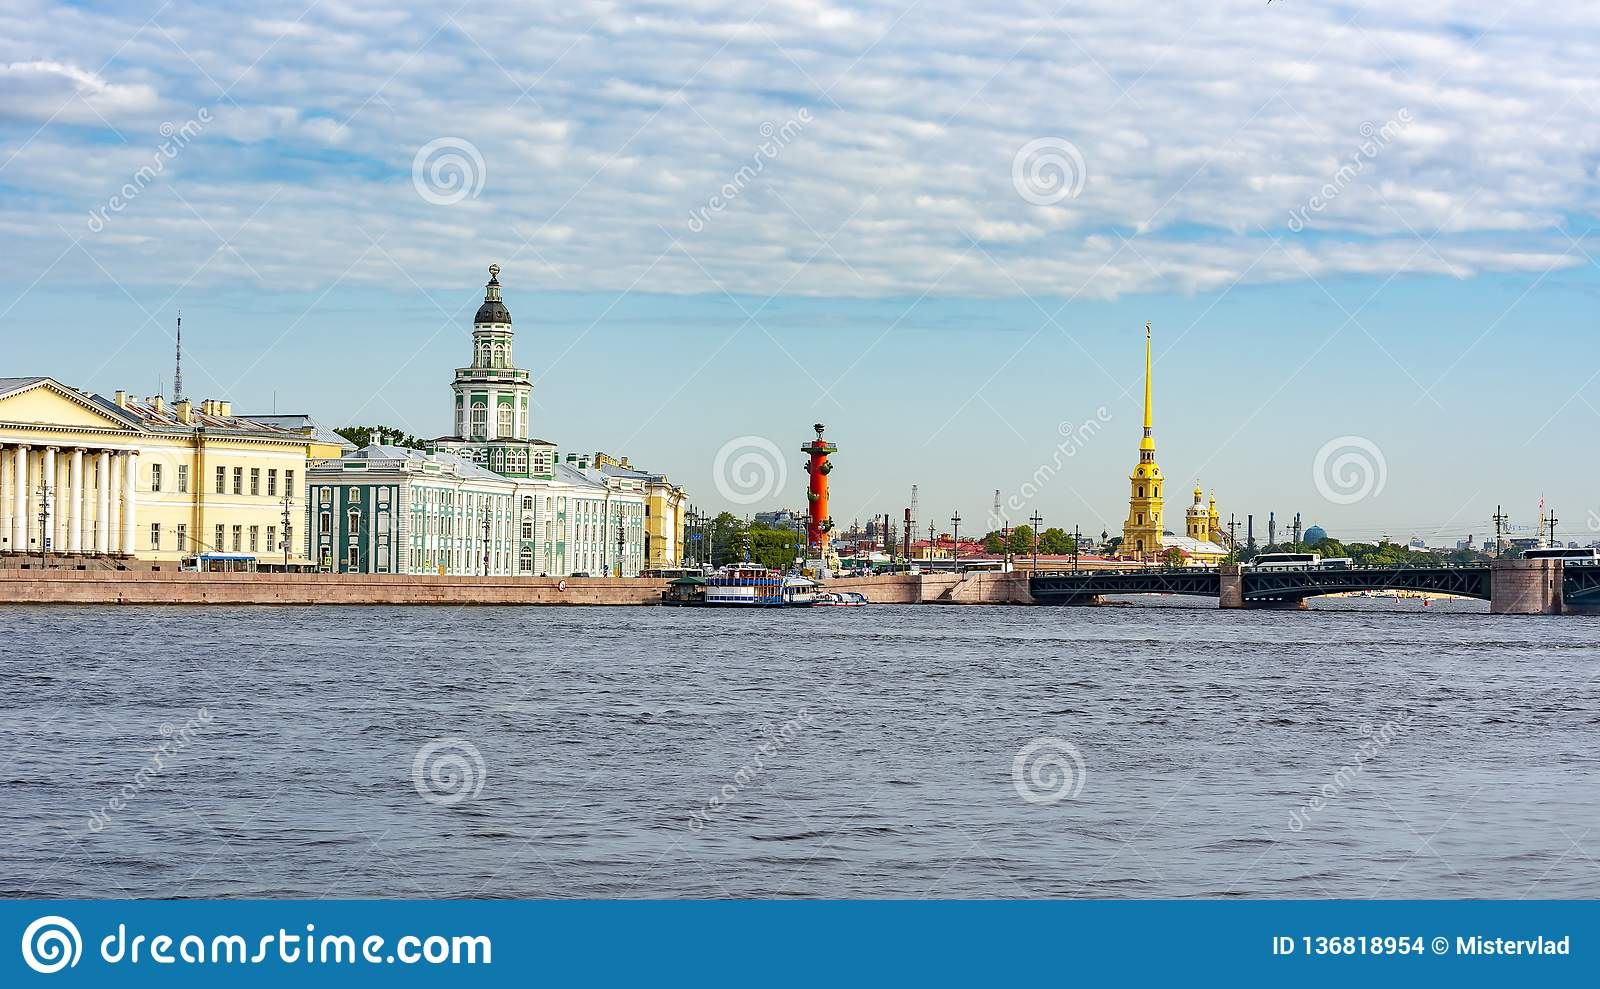 Saint Petersburg cityscape with Kunstkamera and Peter and Paul fortress, Russia